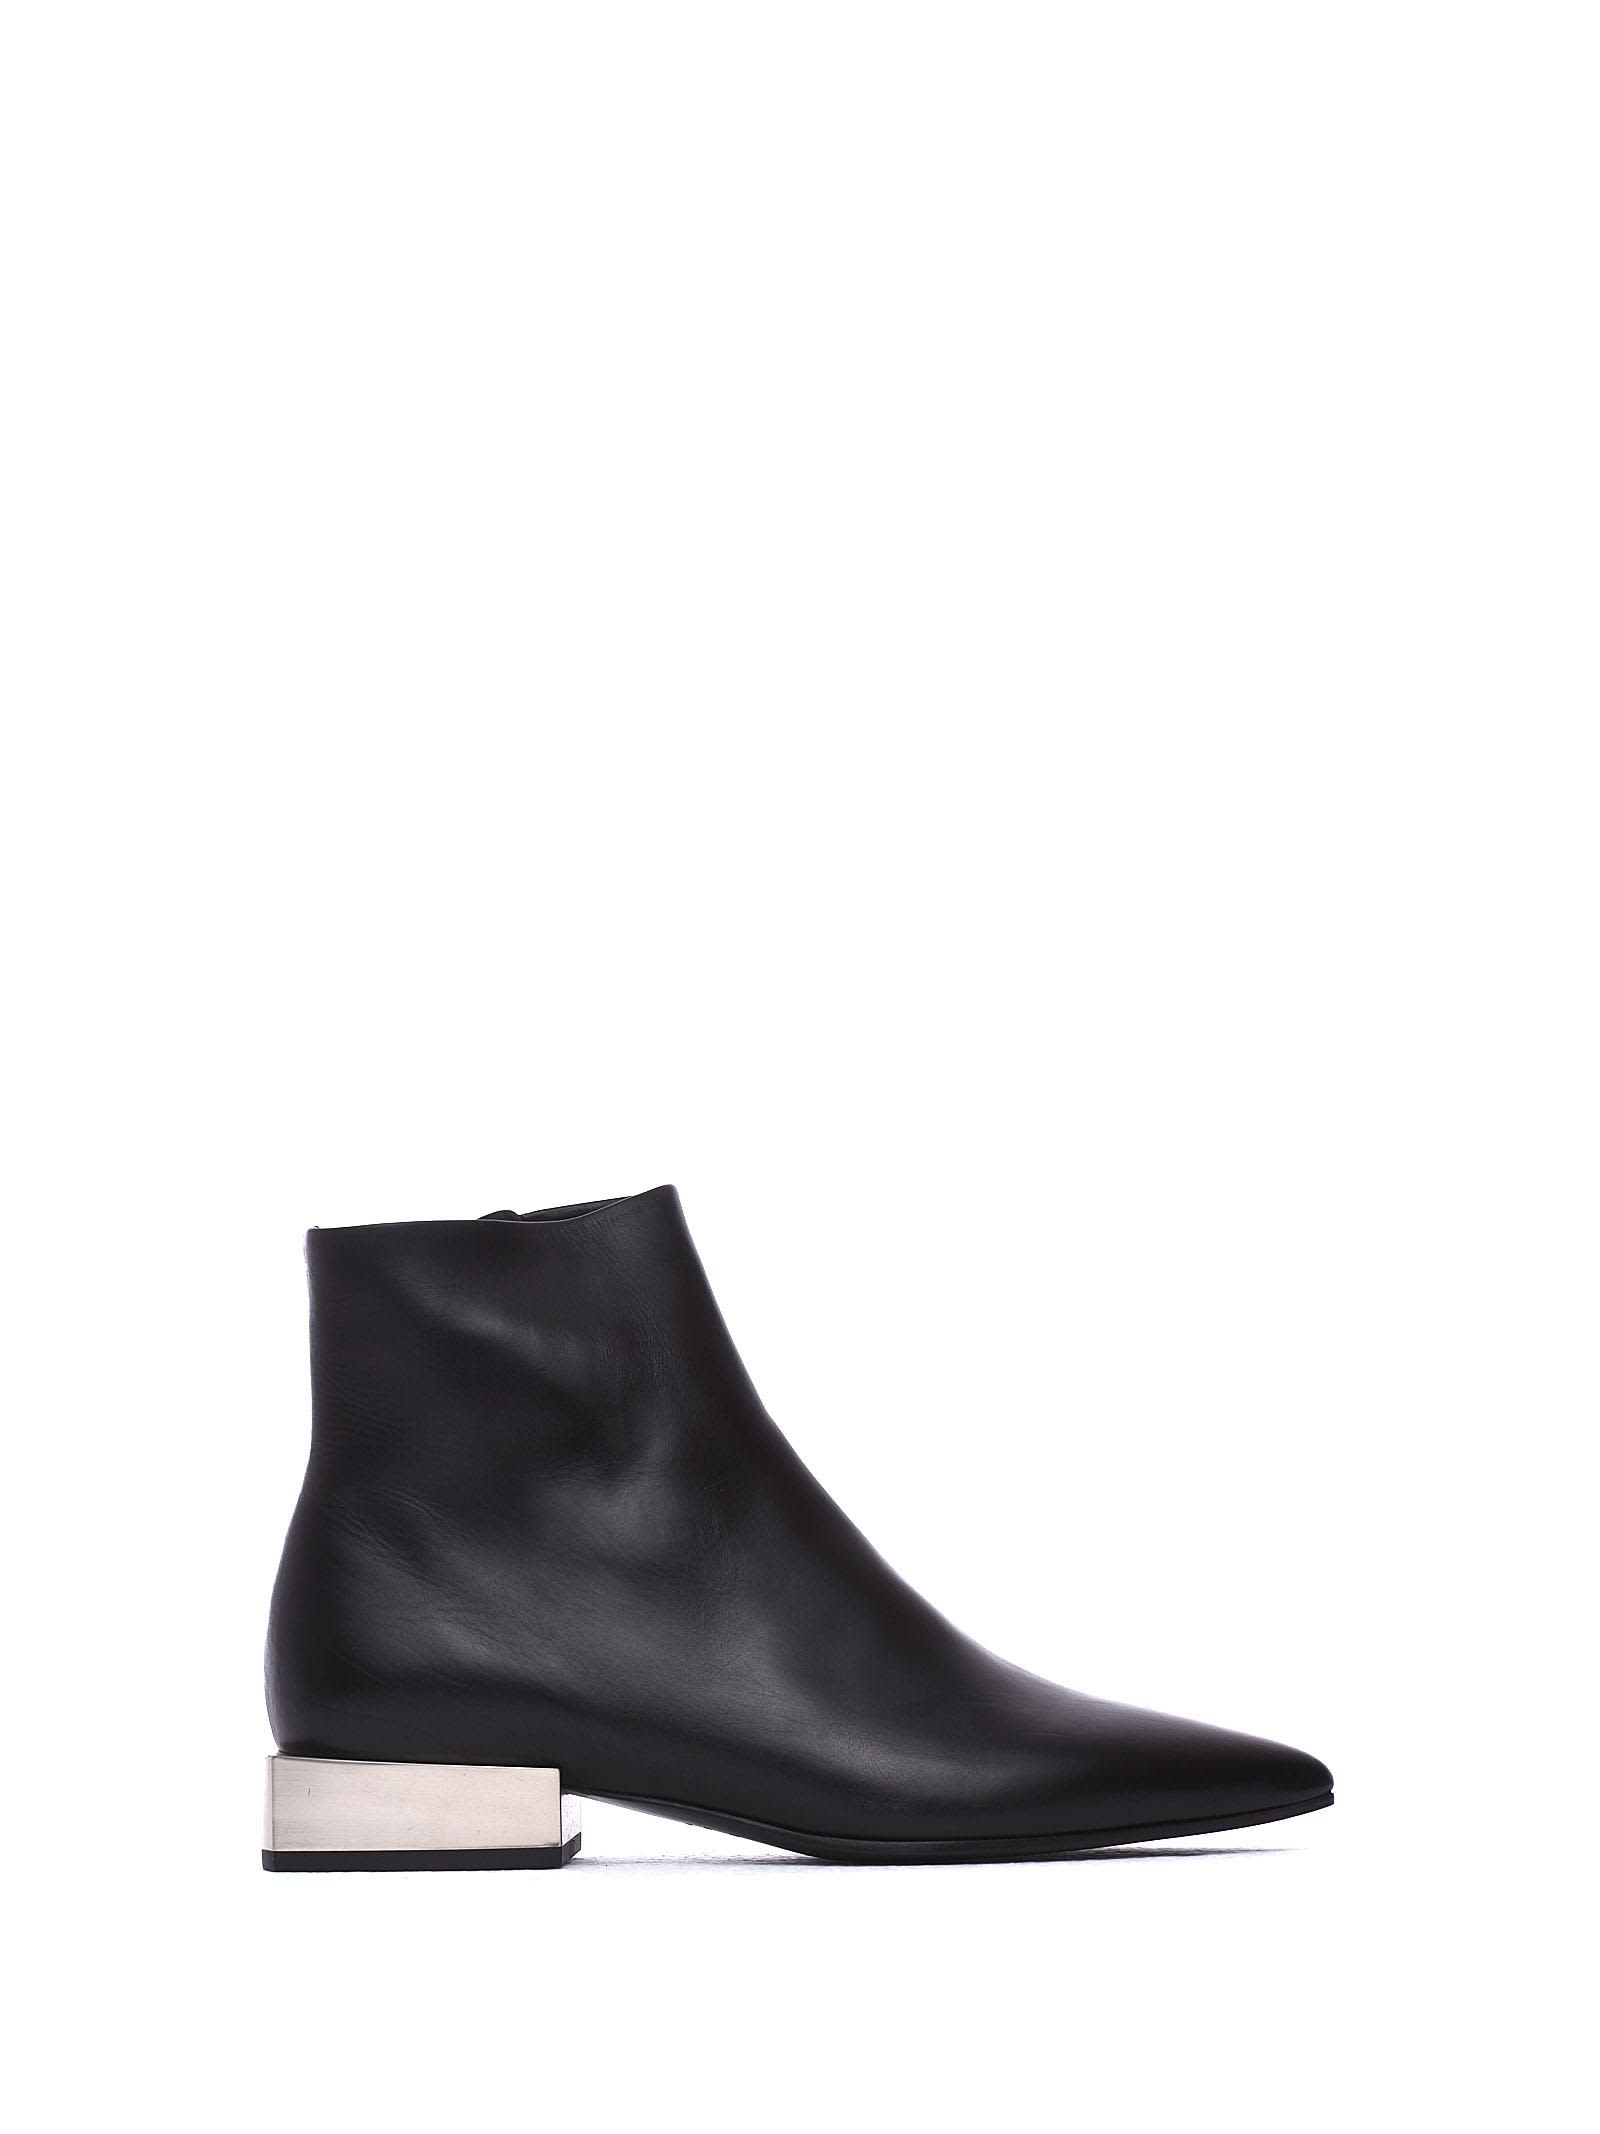 VIC MATIE Leather Heeled Ankle Boots With Metallic Block Heel in Nero